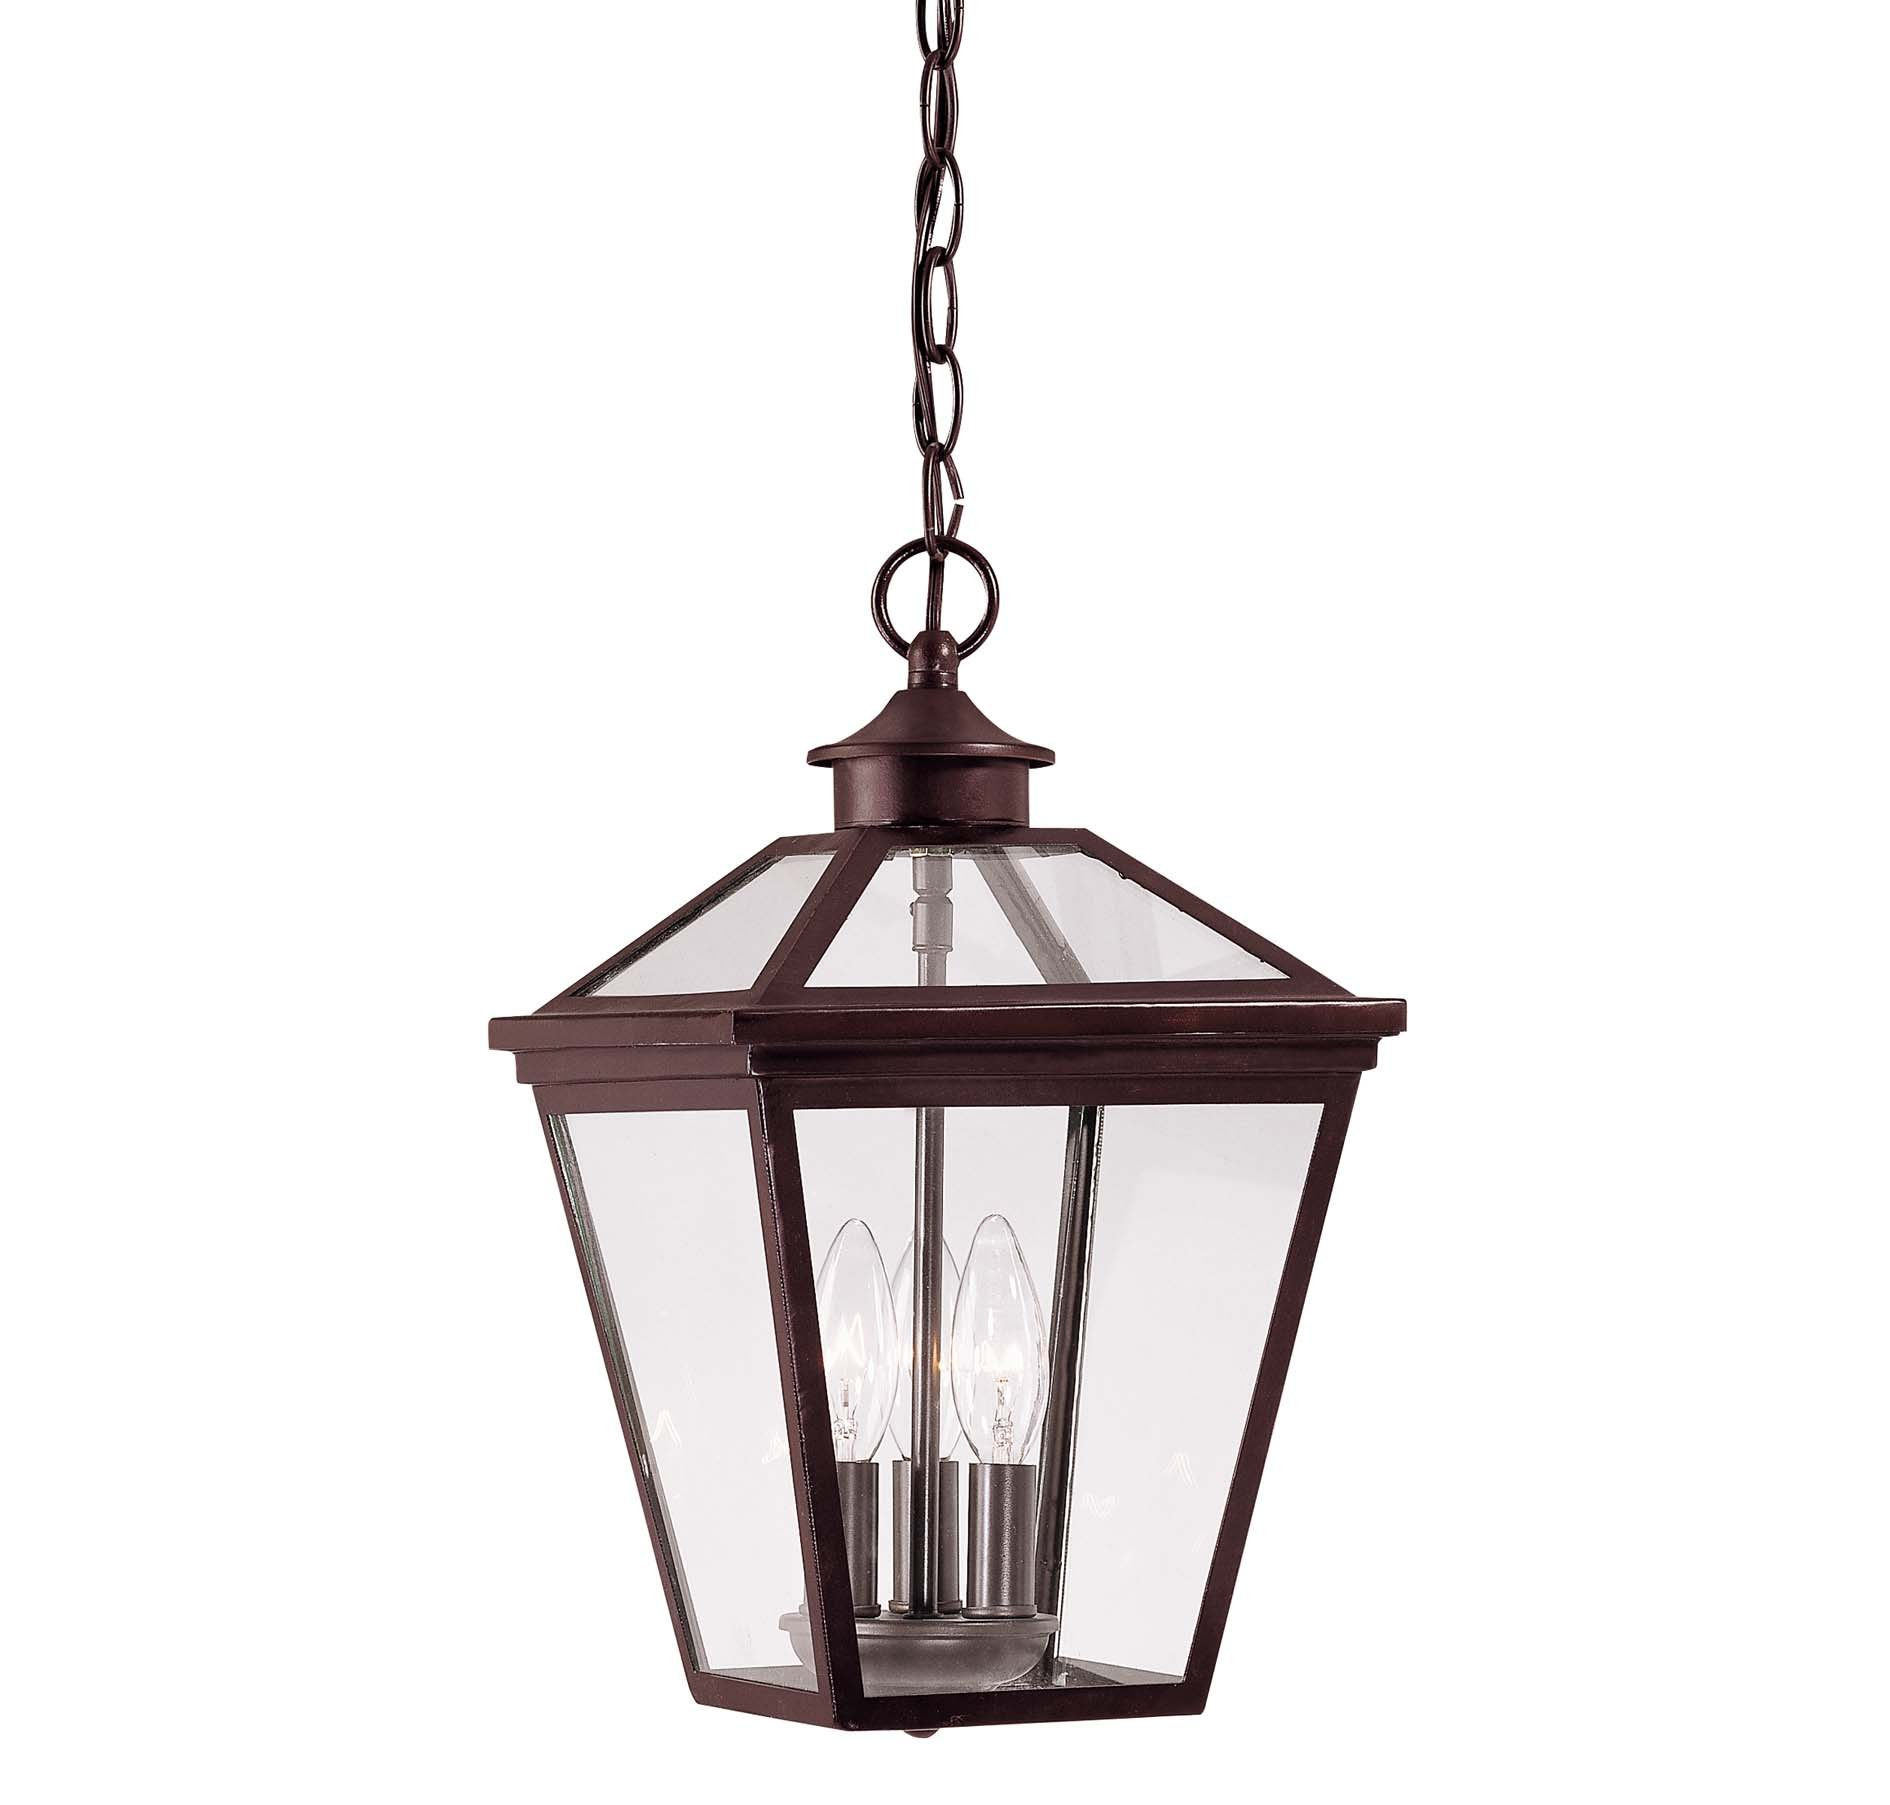 Savoy House 5-146-13 Outdoor Pendant with Clear Shades, English Bronze Finish by Savoy House